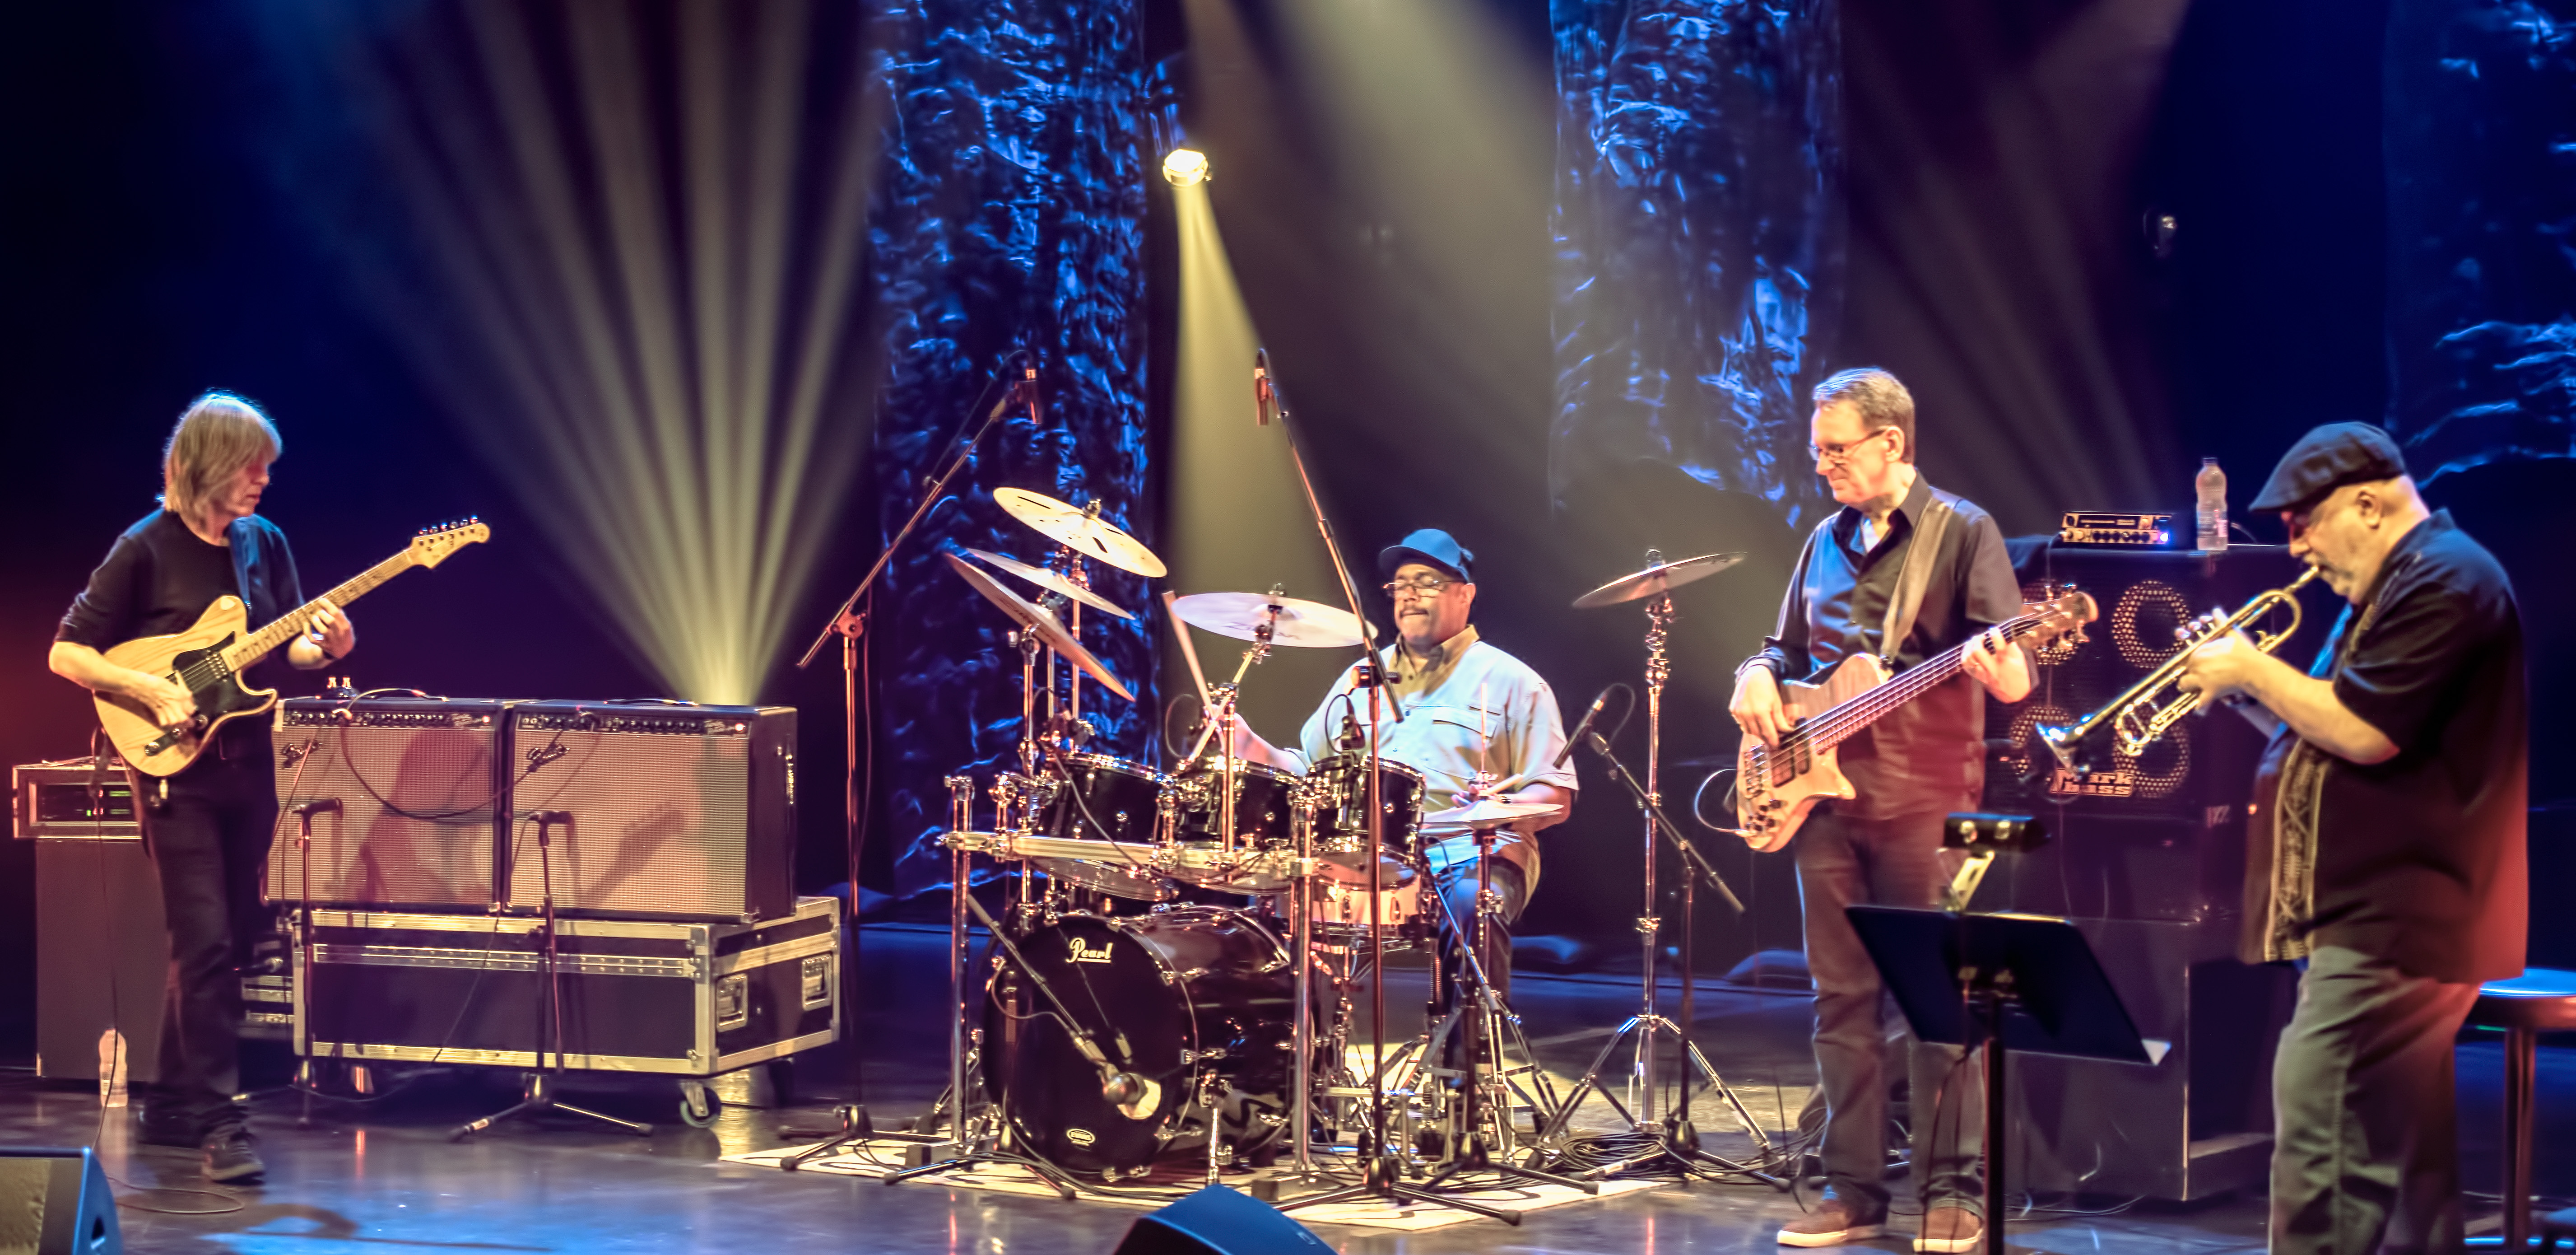 Mike Stern, Dennis Chambers, Tom Kennedy And Randy Brecker With The Stern/brecker Band At The Montreal International Jazz Festival 2018